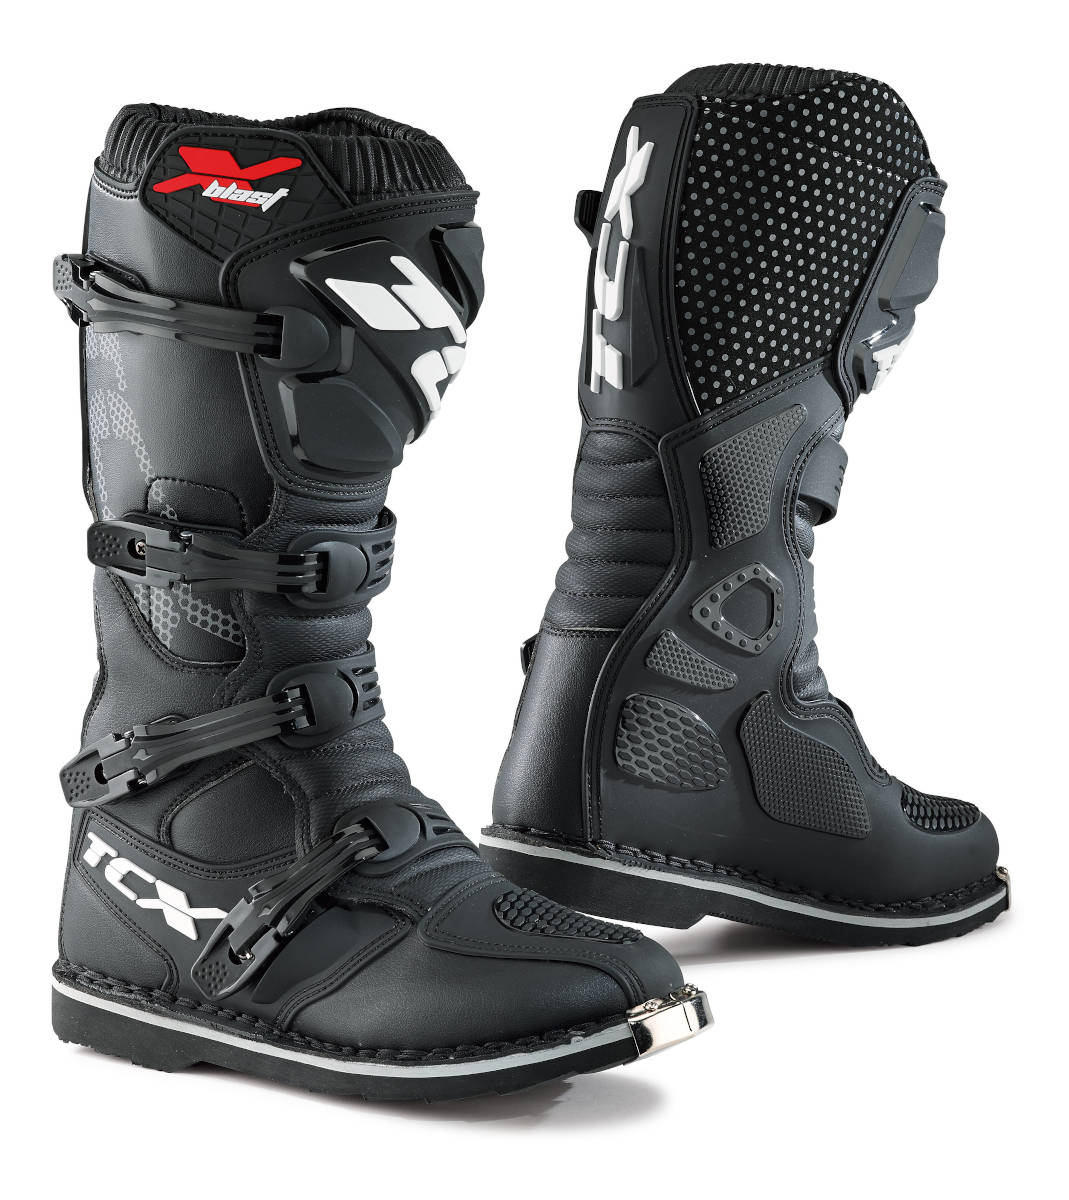 New X-Blast off-road boots by TCX